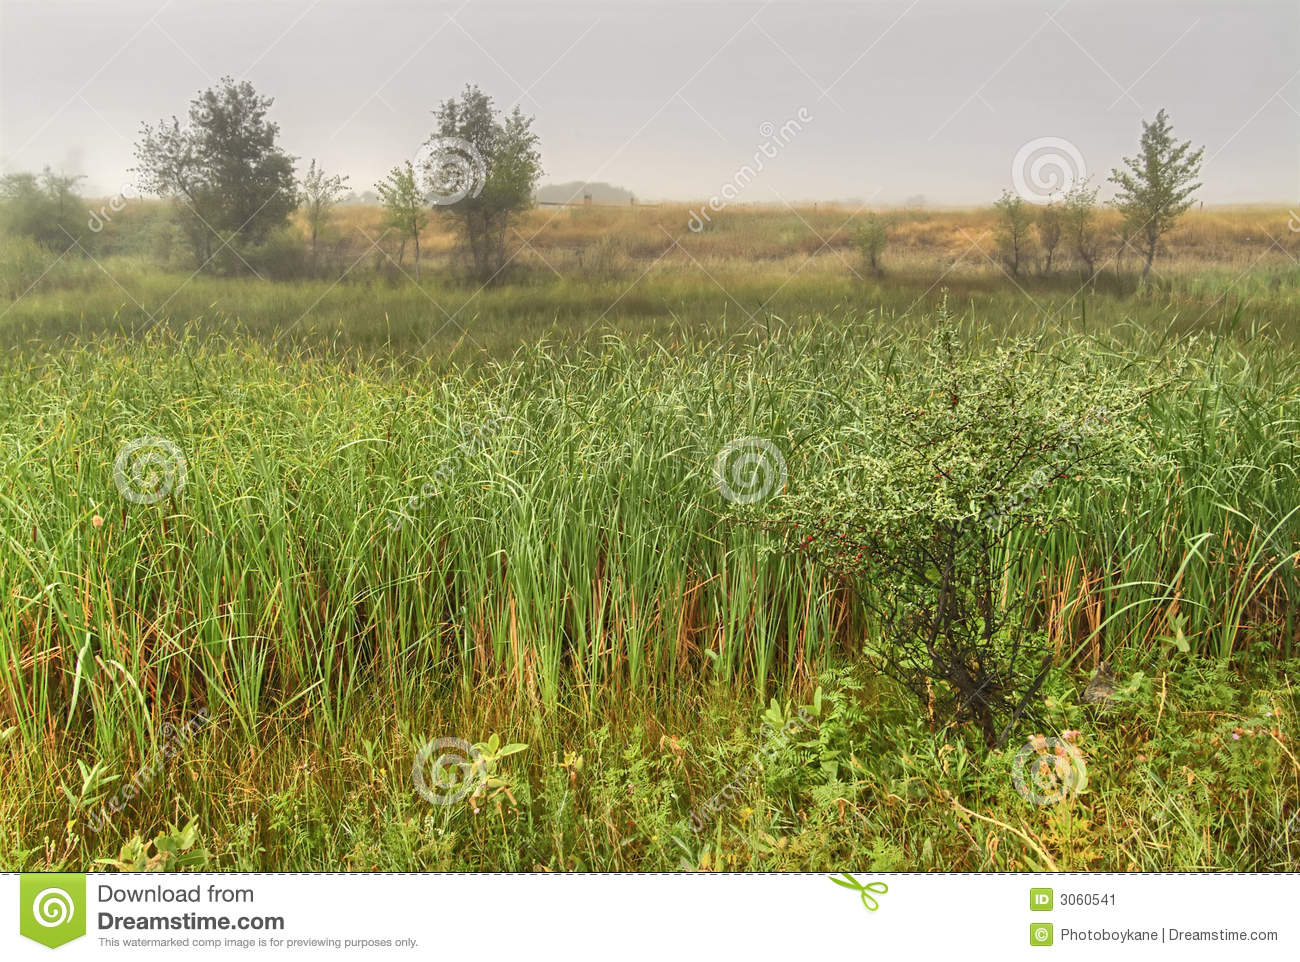 Landscaping With Evergreens And Grasses : Early morning scenic from the wetlands near headwaters of